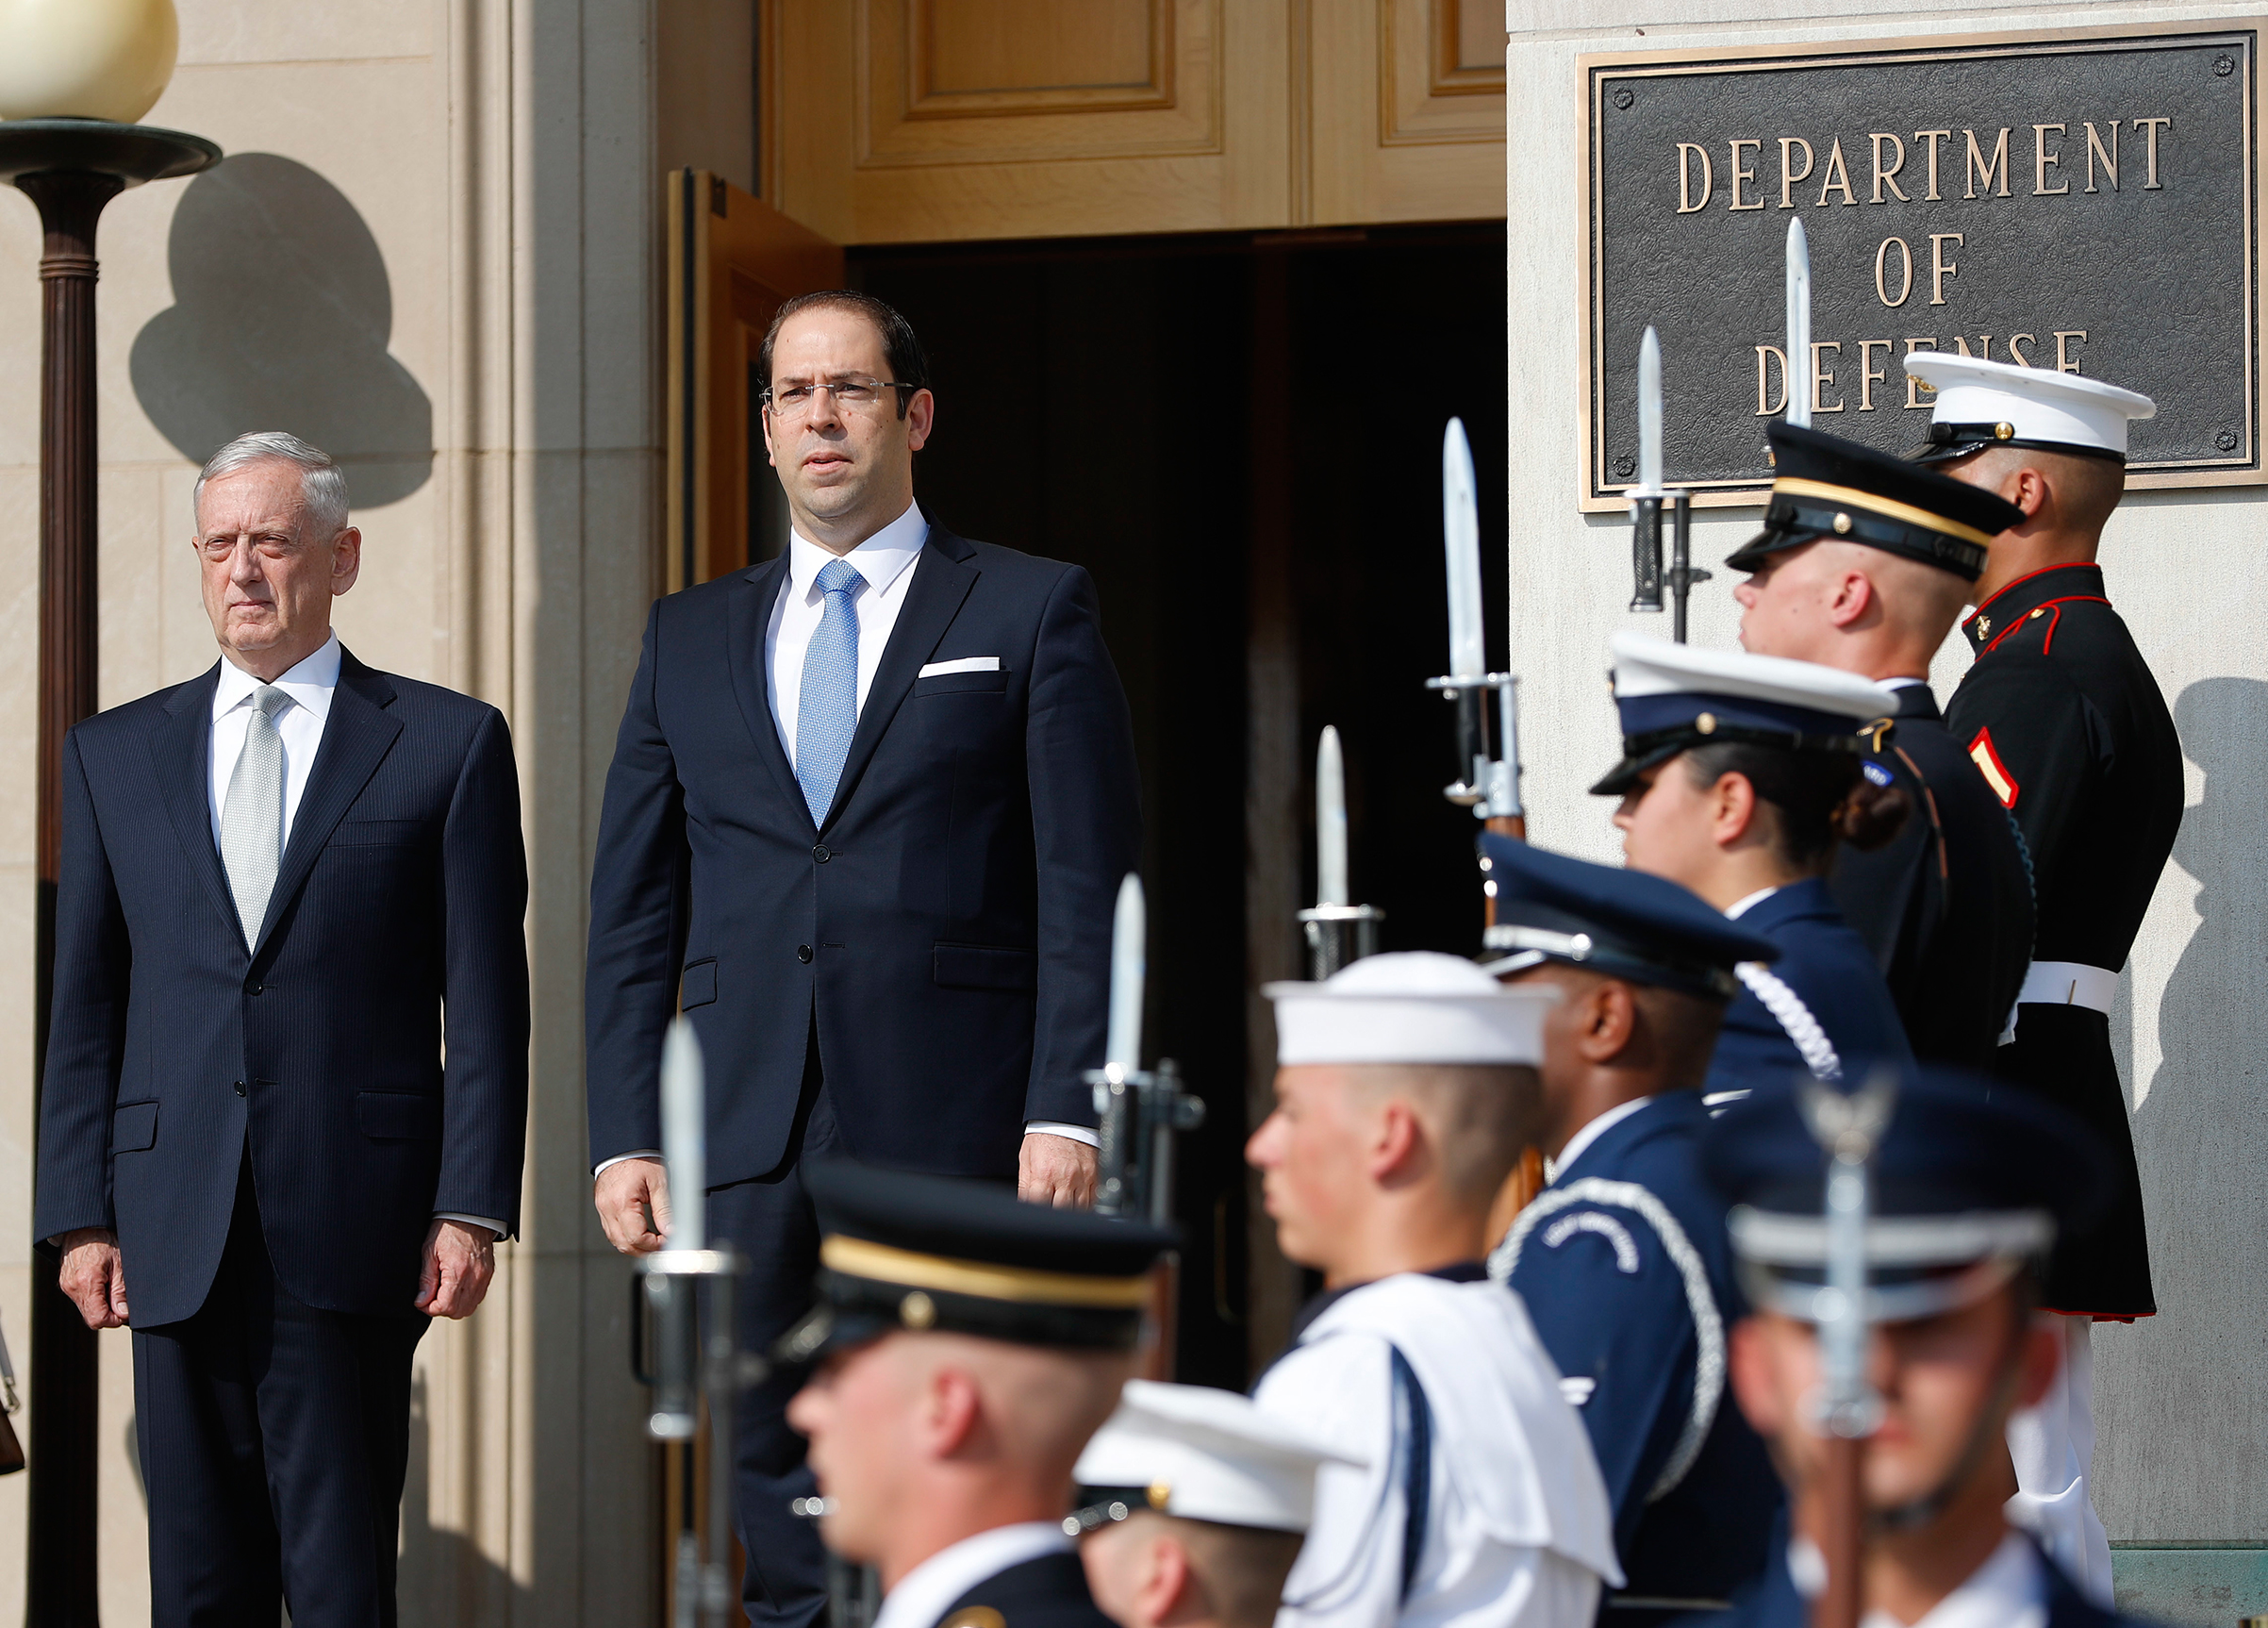 Defense Secretary Jim Mattis, left, hosts an enhanced honor cordon for Tunisian Prime Minister Youssef Chahed at the Pentagon, July 10, 2017.